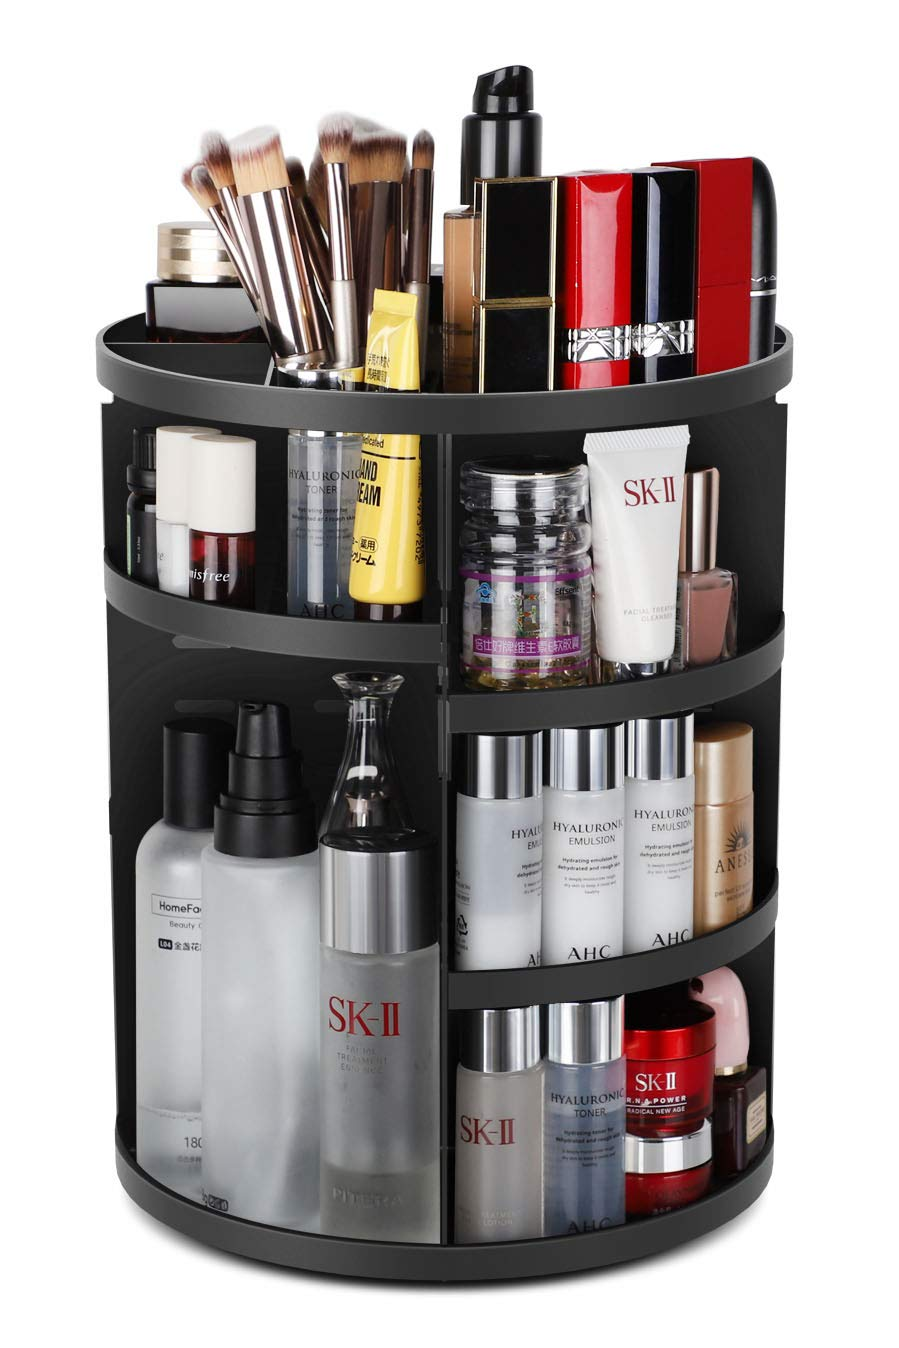 The Best countertop makeup organizer - Our pick